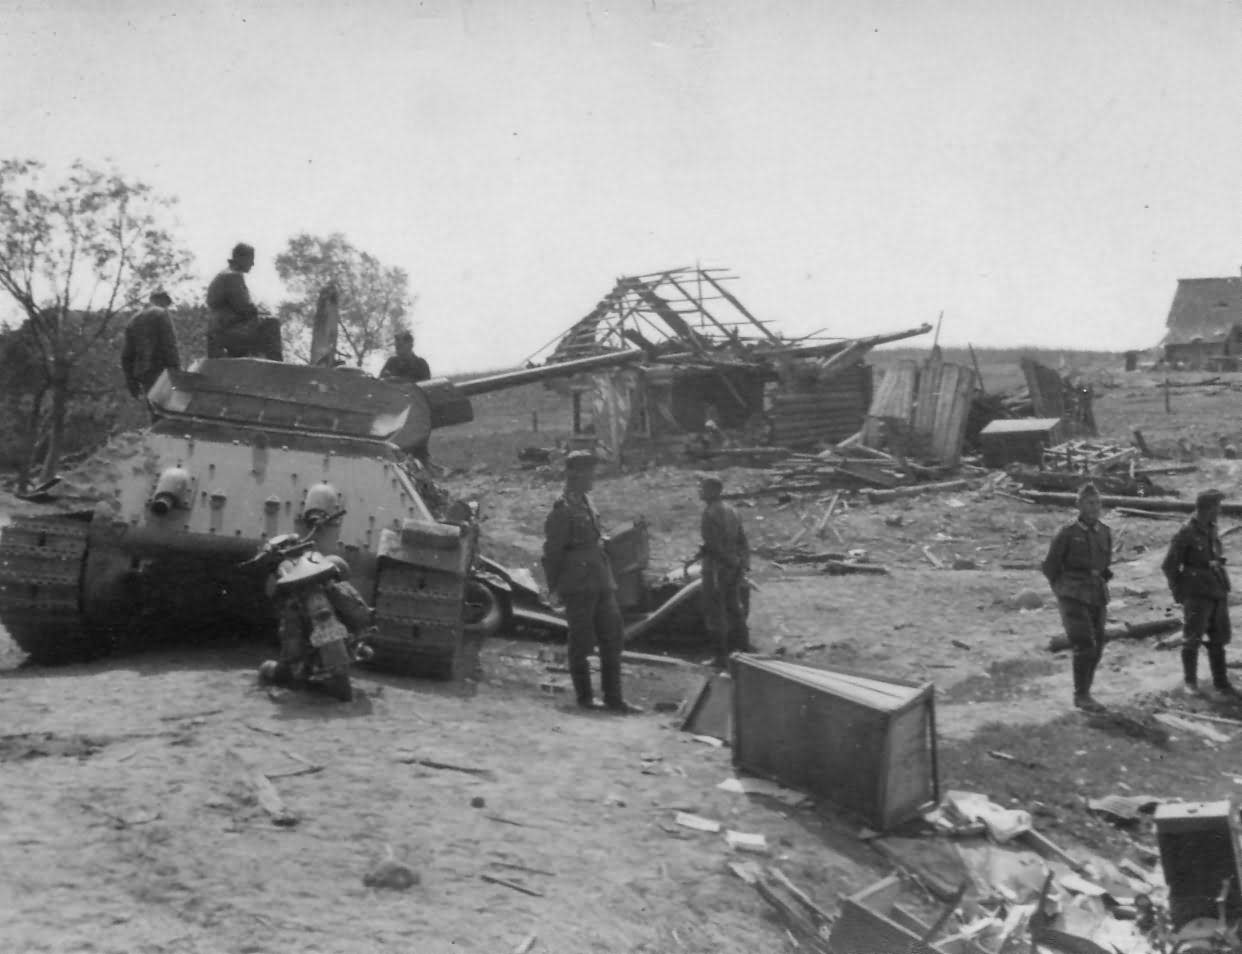 abandoned soviet tank T-34/76 mod 1941 after capture by German forces, Summer 1941